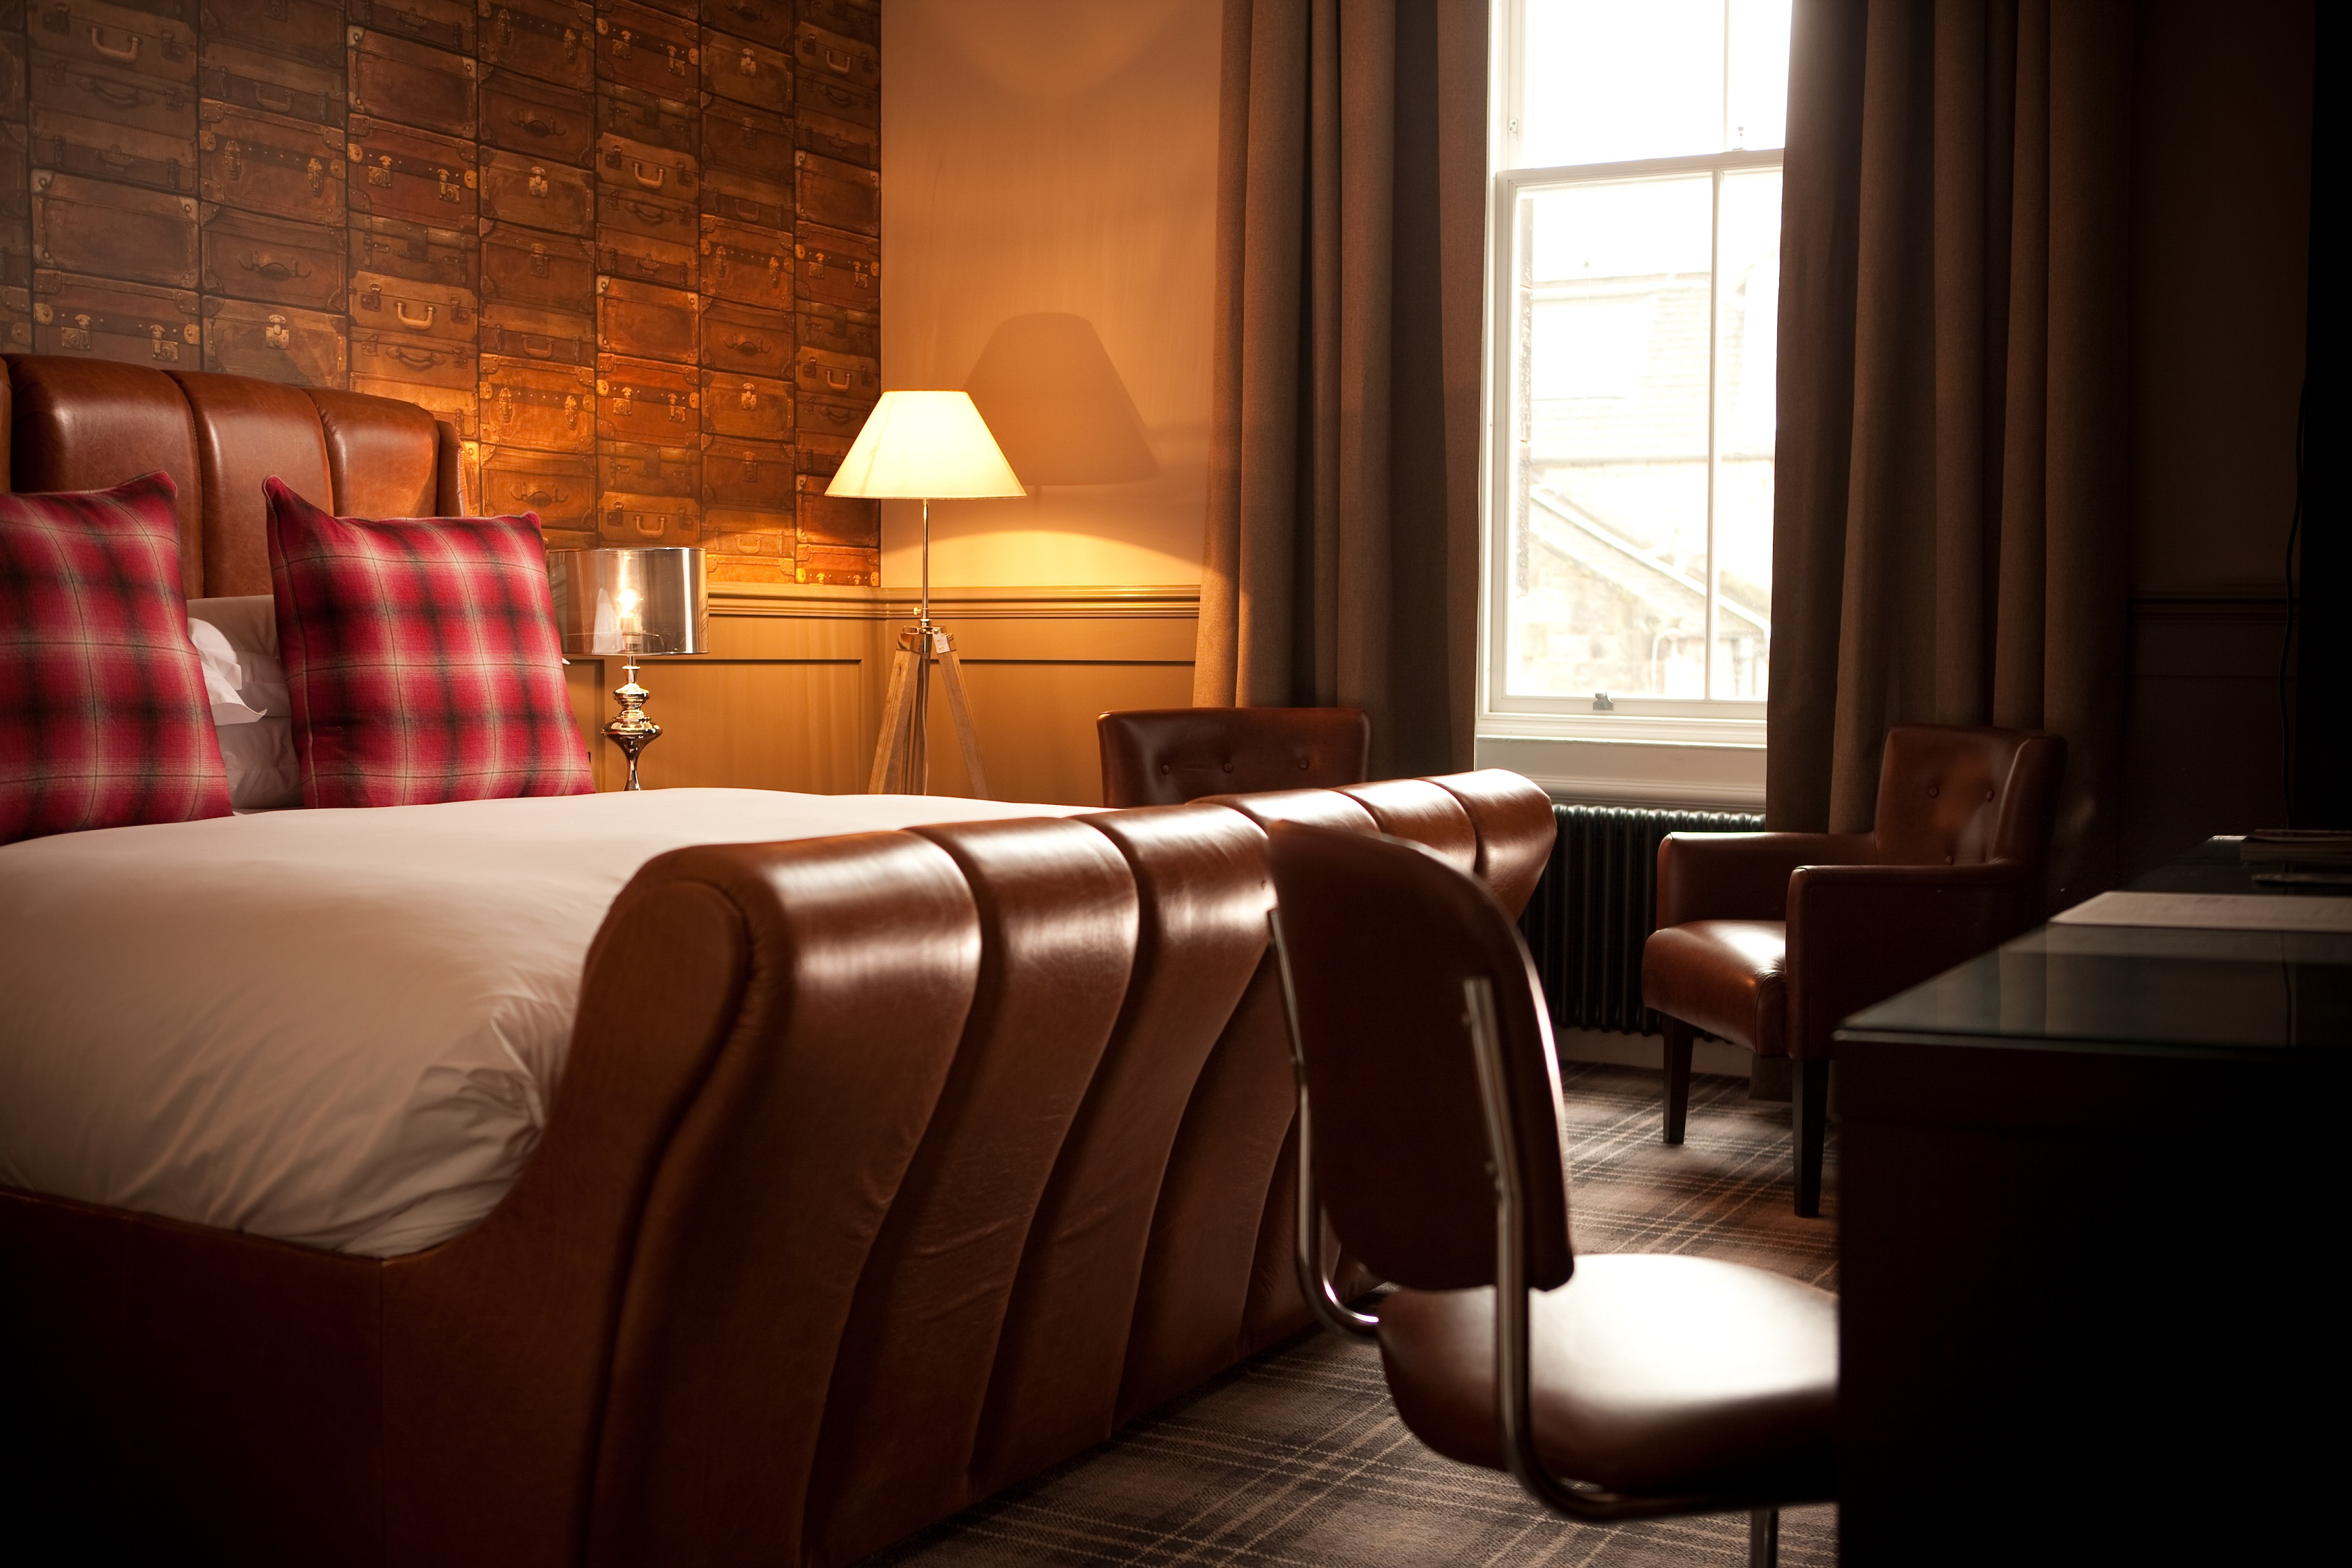 Standard Guest Room - luxury guest rooms at Hotel du Vin St Andrews